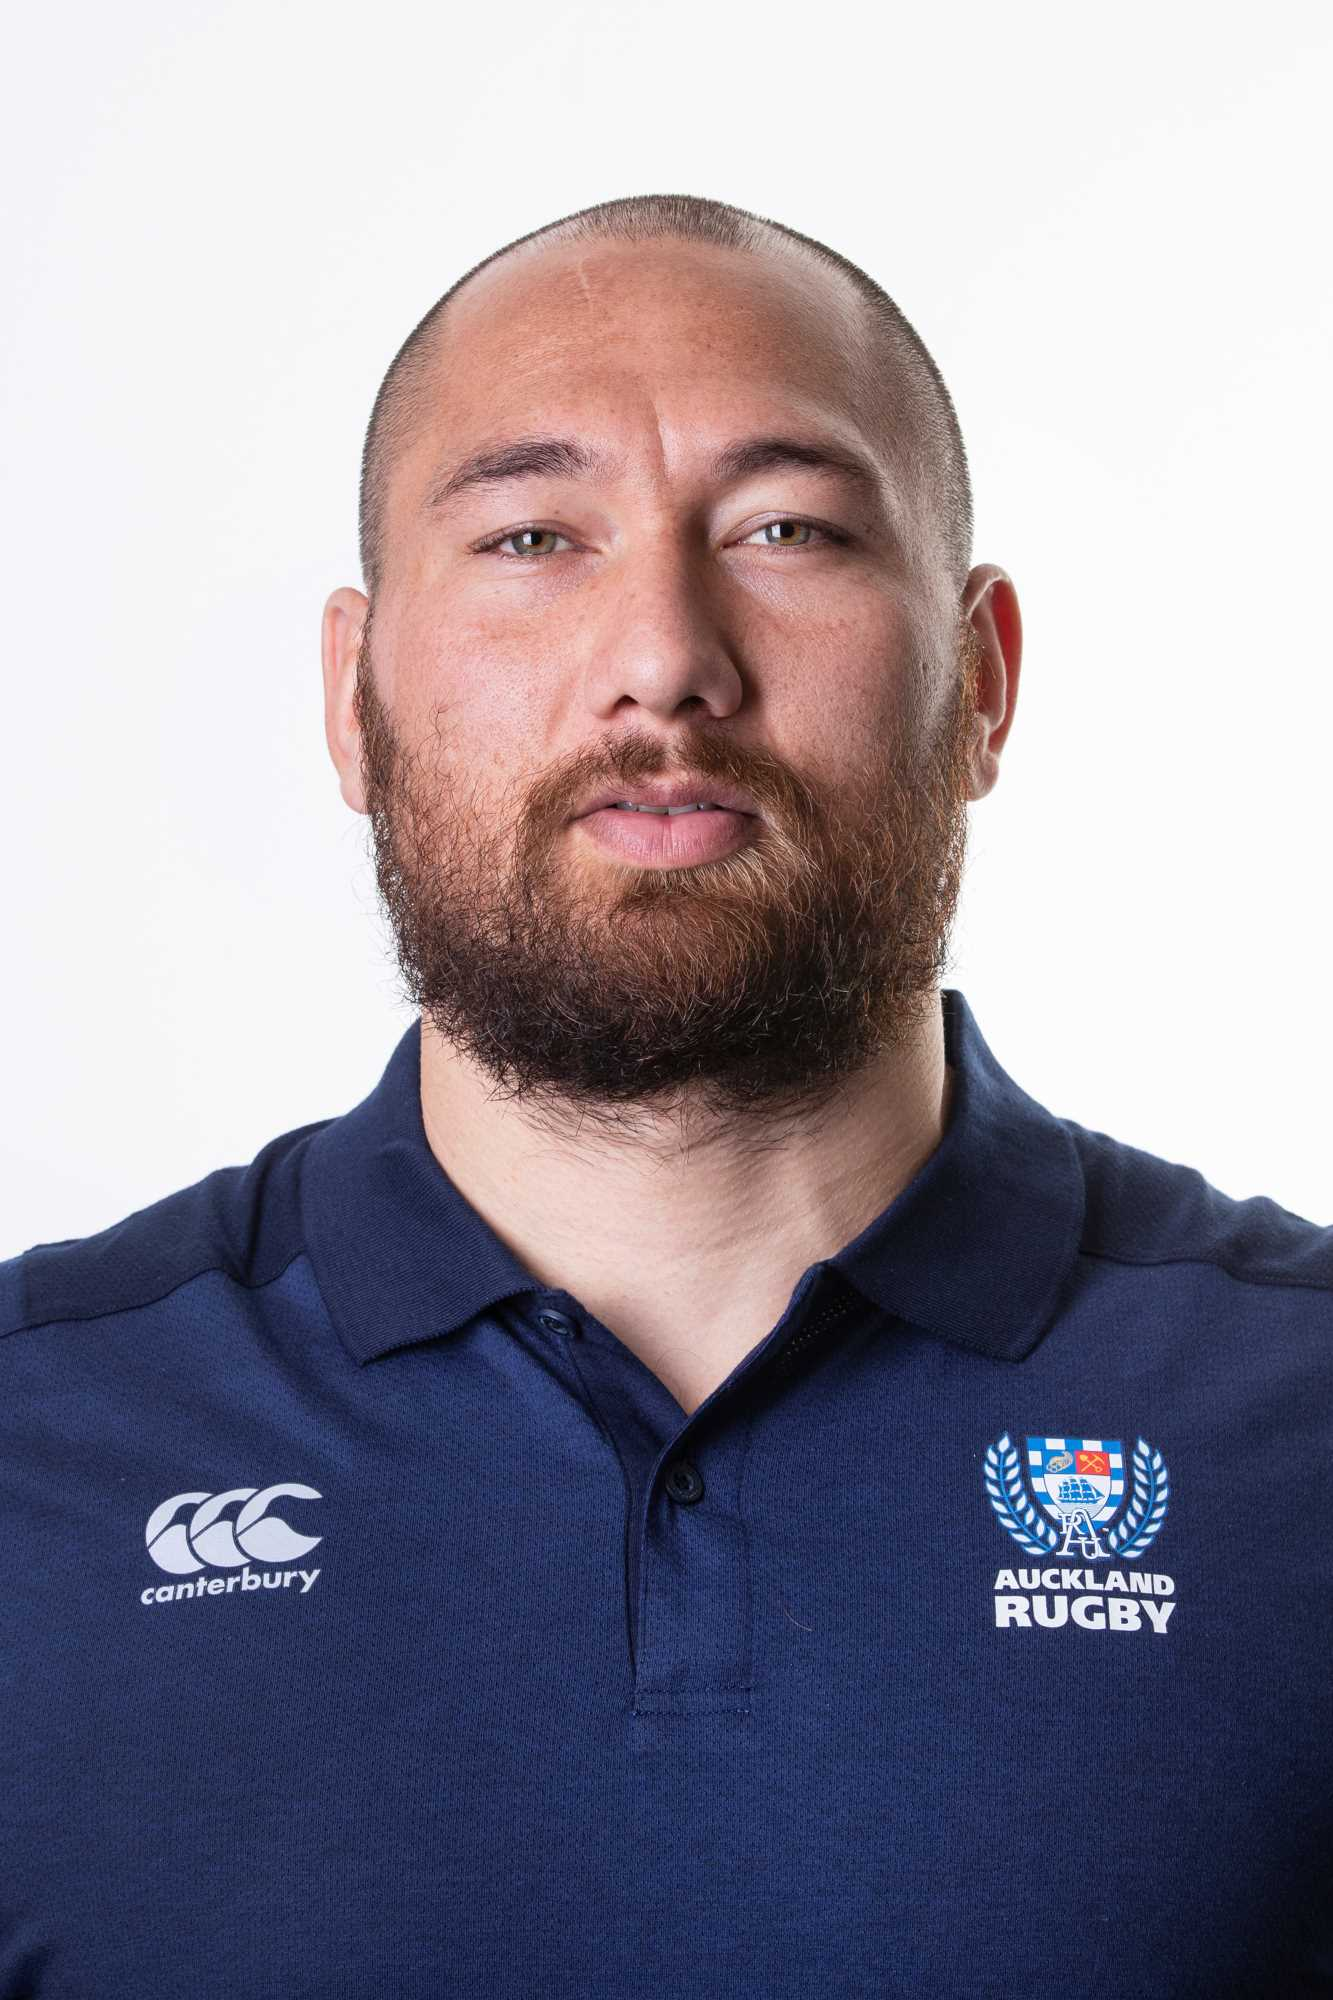 Auckland Rugby Union - Player Profiles